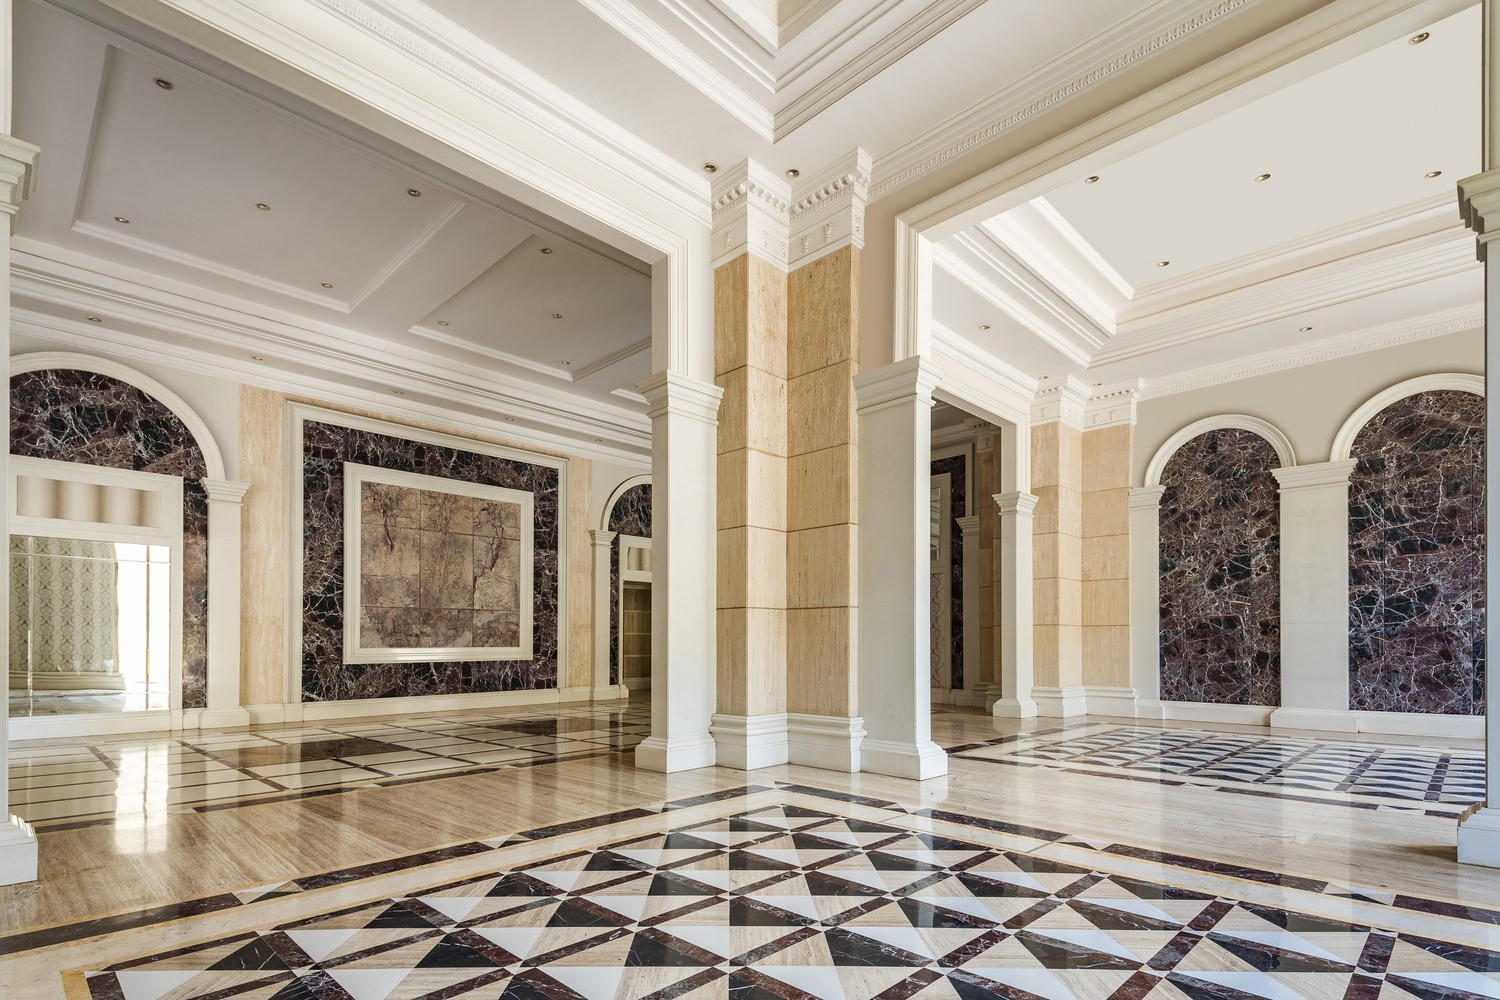 A large lobby that has walls with marbles and floors full of tiles along the area.